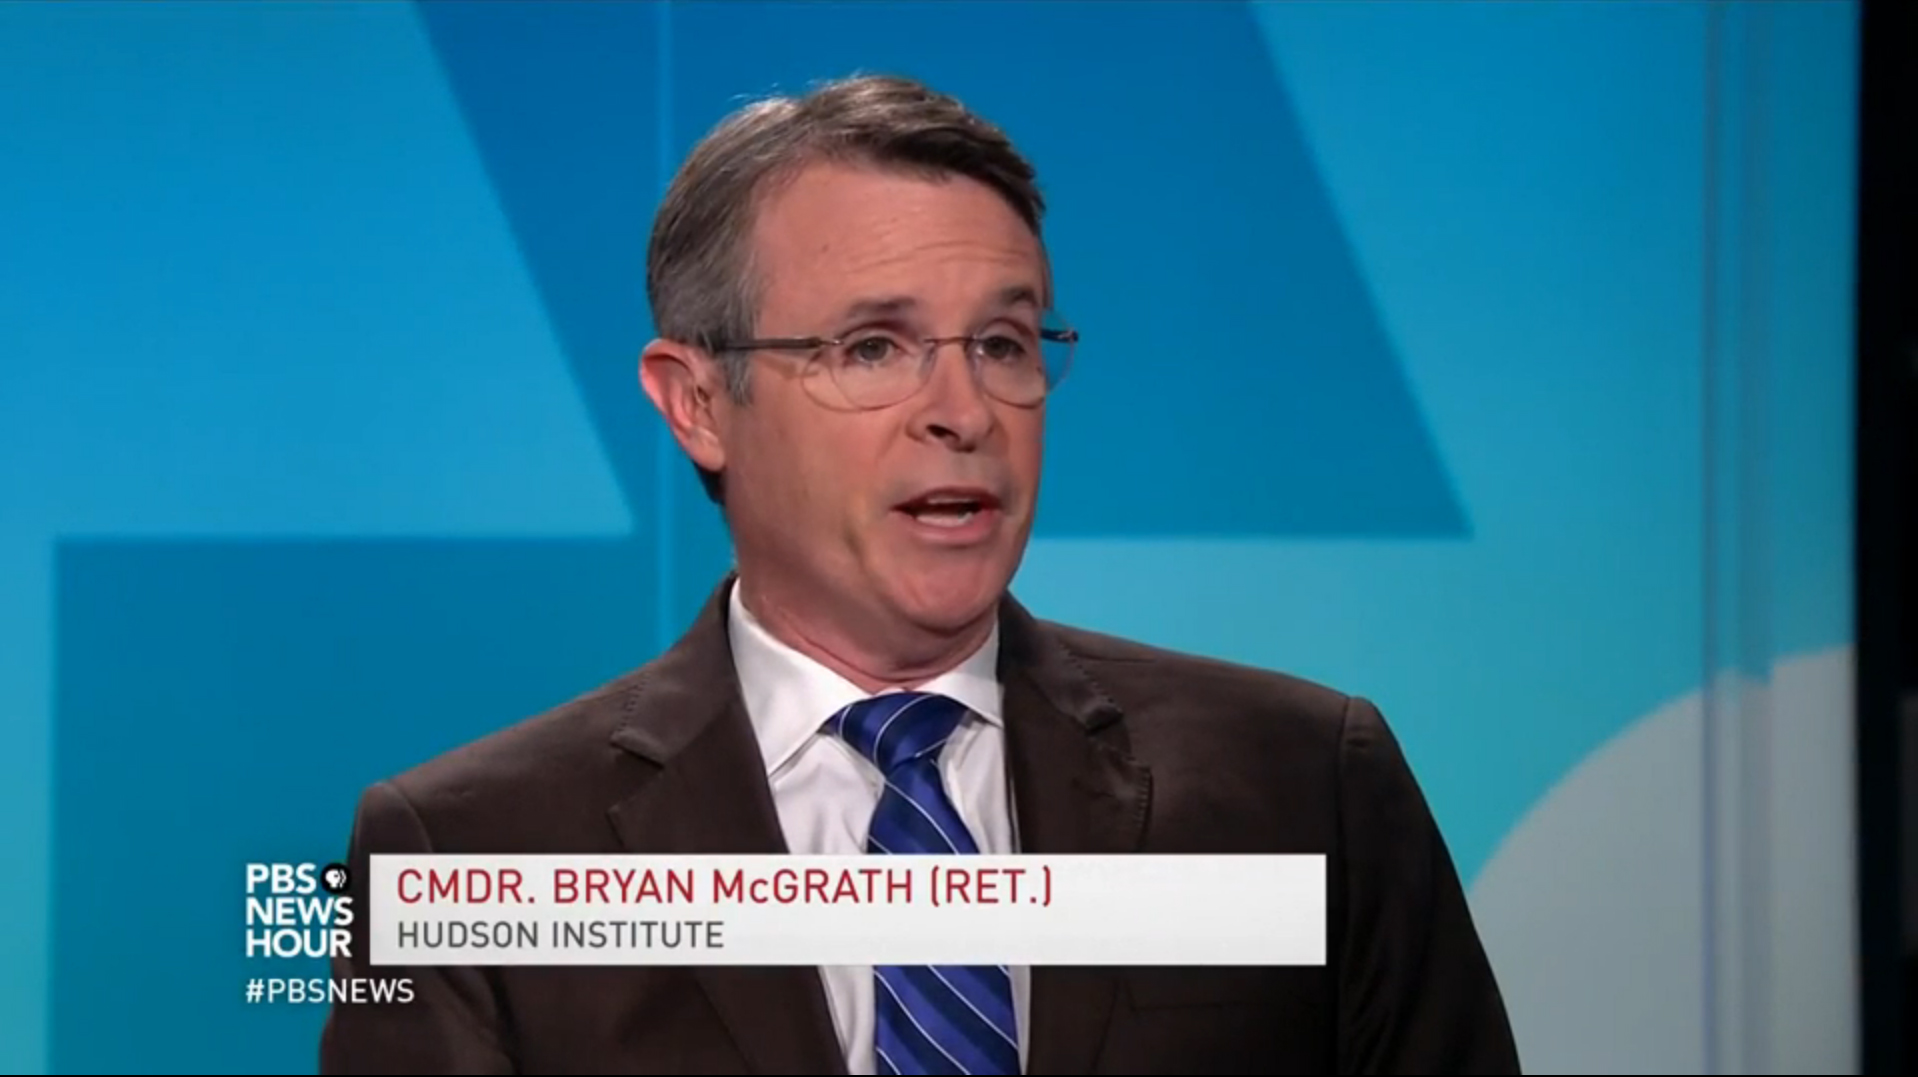 Bryan McGrath on PBS News Hour, August 21, 2017